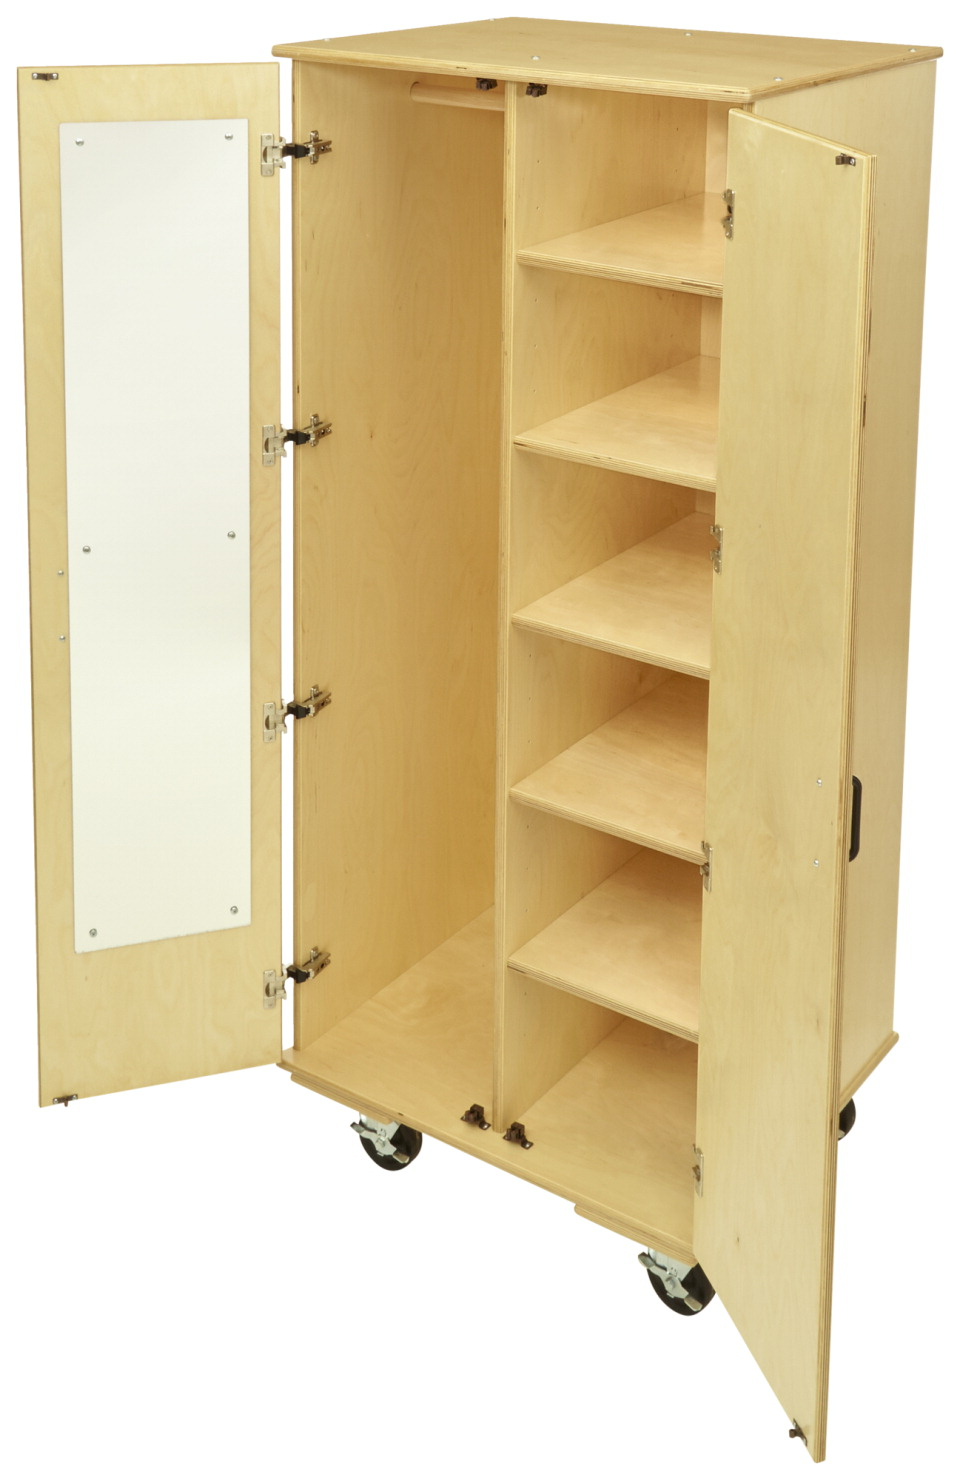 Classroom Select Small Mobile Storage with Adjustable Shelf/Closet, 29-1/2 x 24 x 66-3/4 Inches